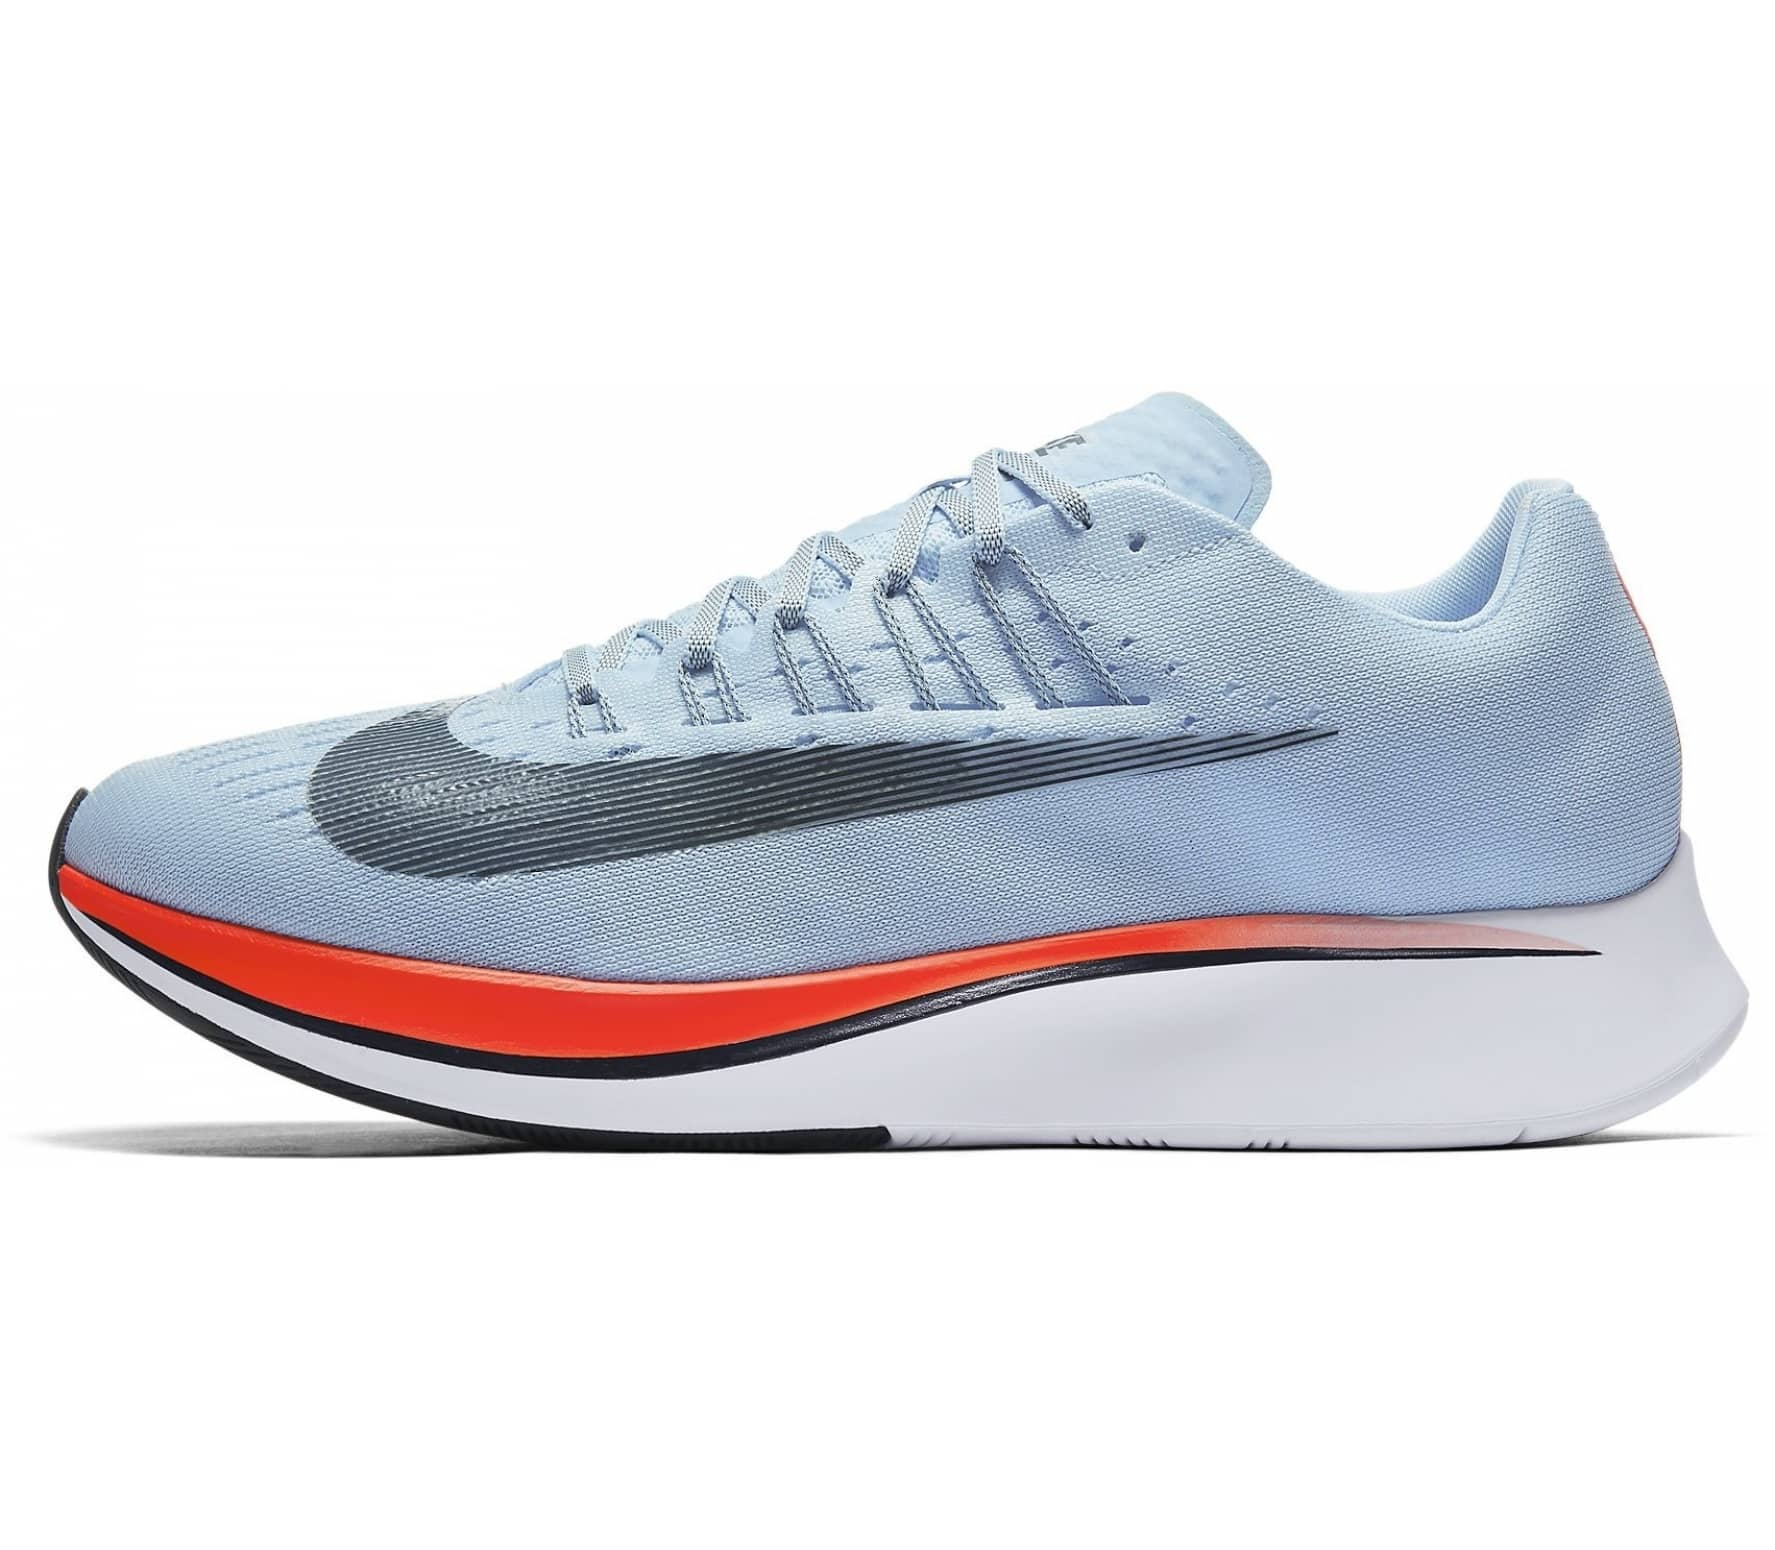 on sale 4f987 f01a2 Nike - Zoom Fly mens running shoes (light blue)